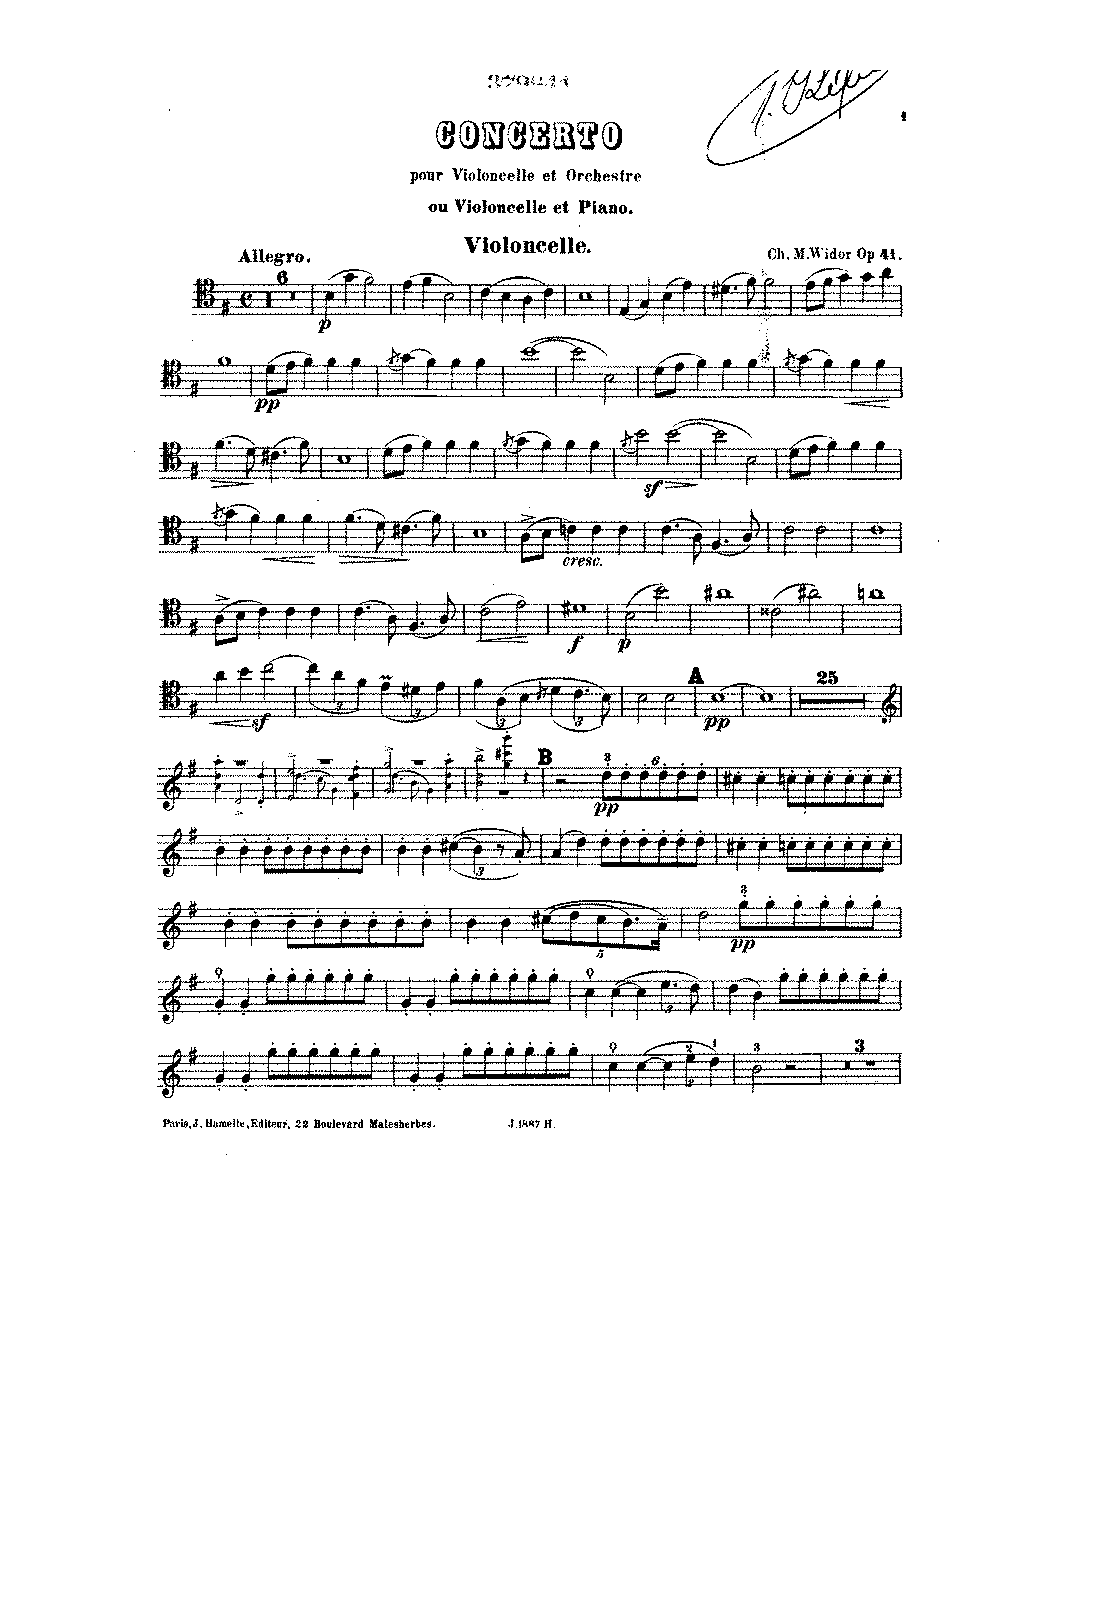 SIBLEY1802.12636.a6e8-39087009384480cello.pdf